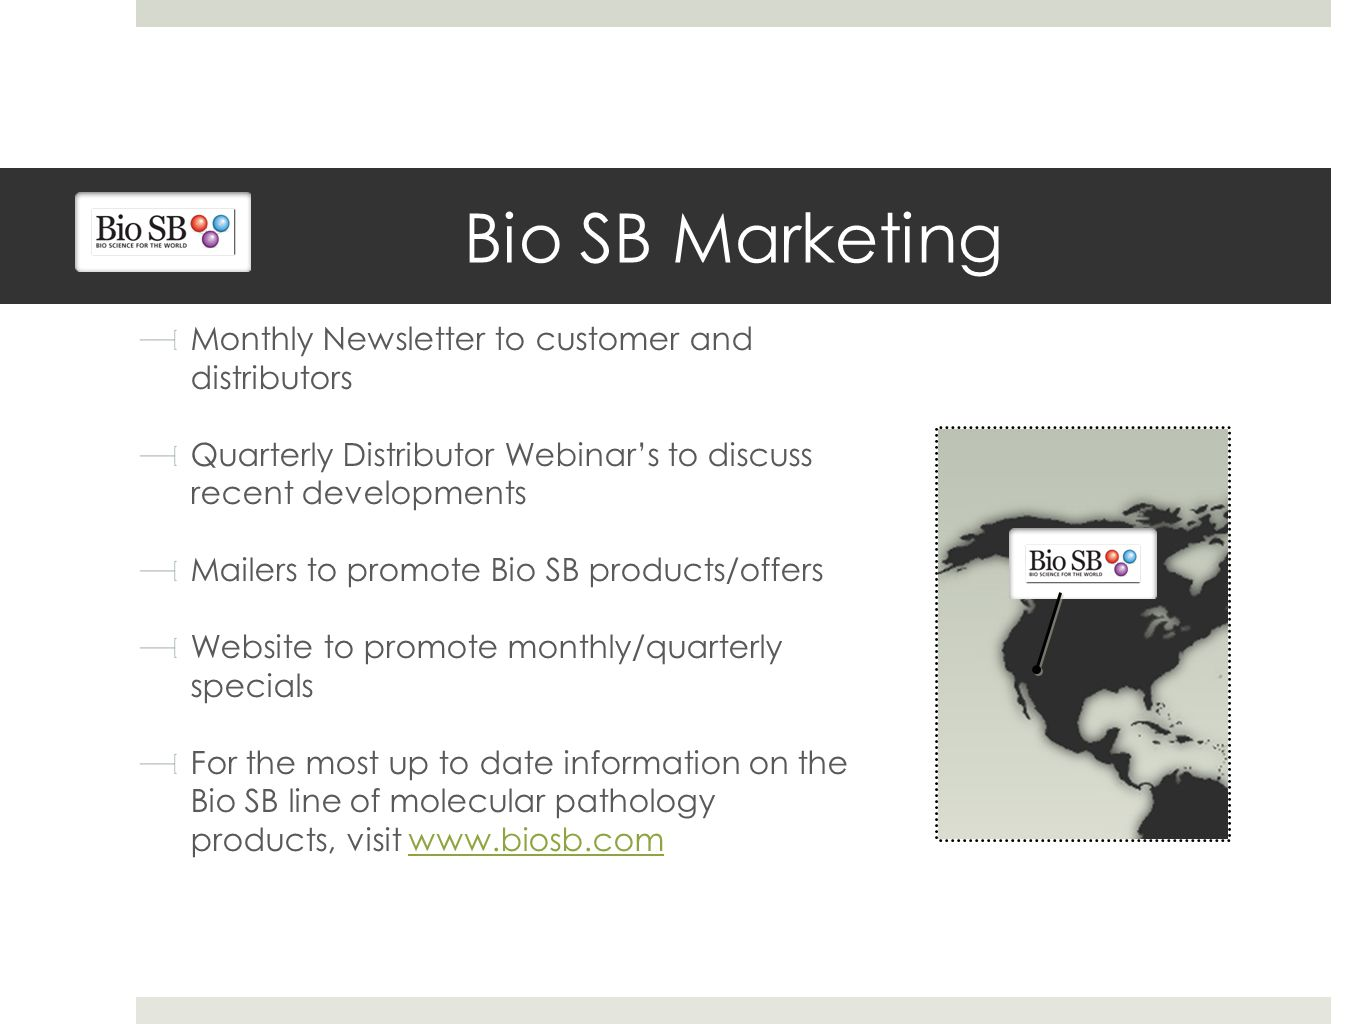 Bio SB Marketing Monthly Newsletter to customer and distributors Quarterly Distributor Webinar's to discuss recent developments Mailers to promote Bio SB products/offers Website to promote monthly/quarterly specials For the most up to date information on the Bio SB line of molecular pathology products, visit www.biosb.comwww.biosb.com